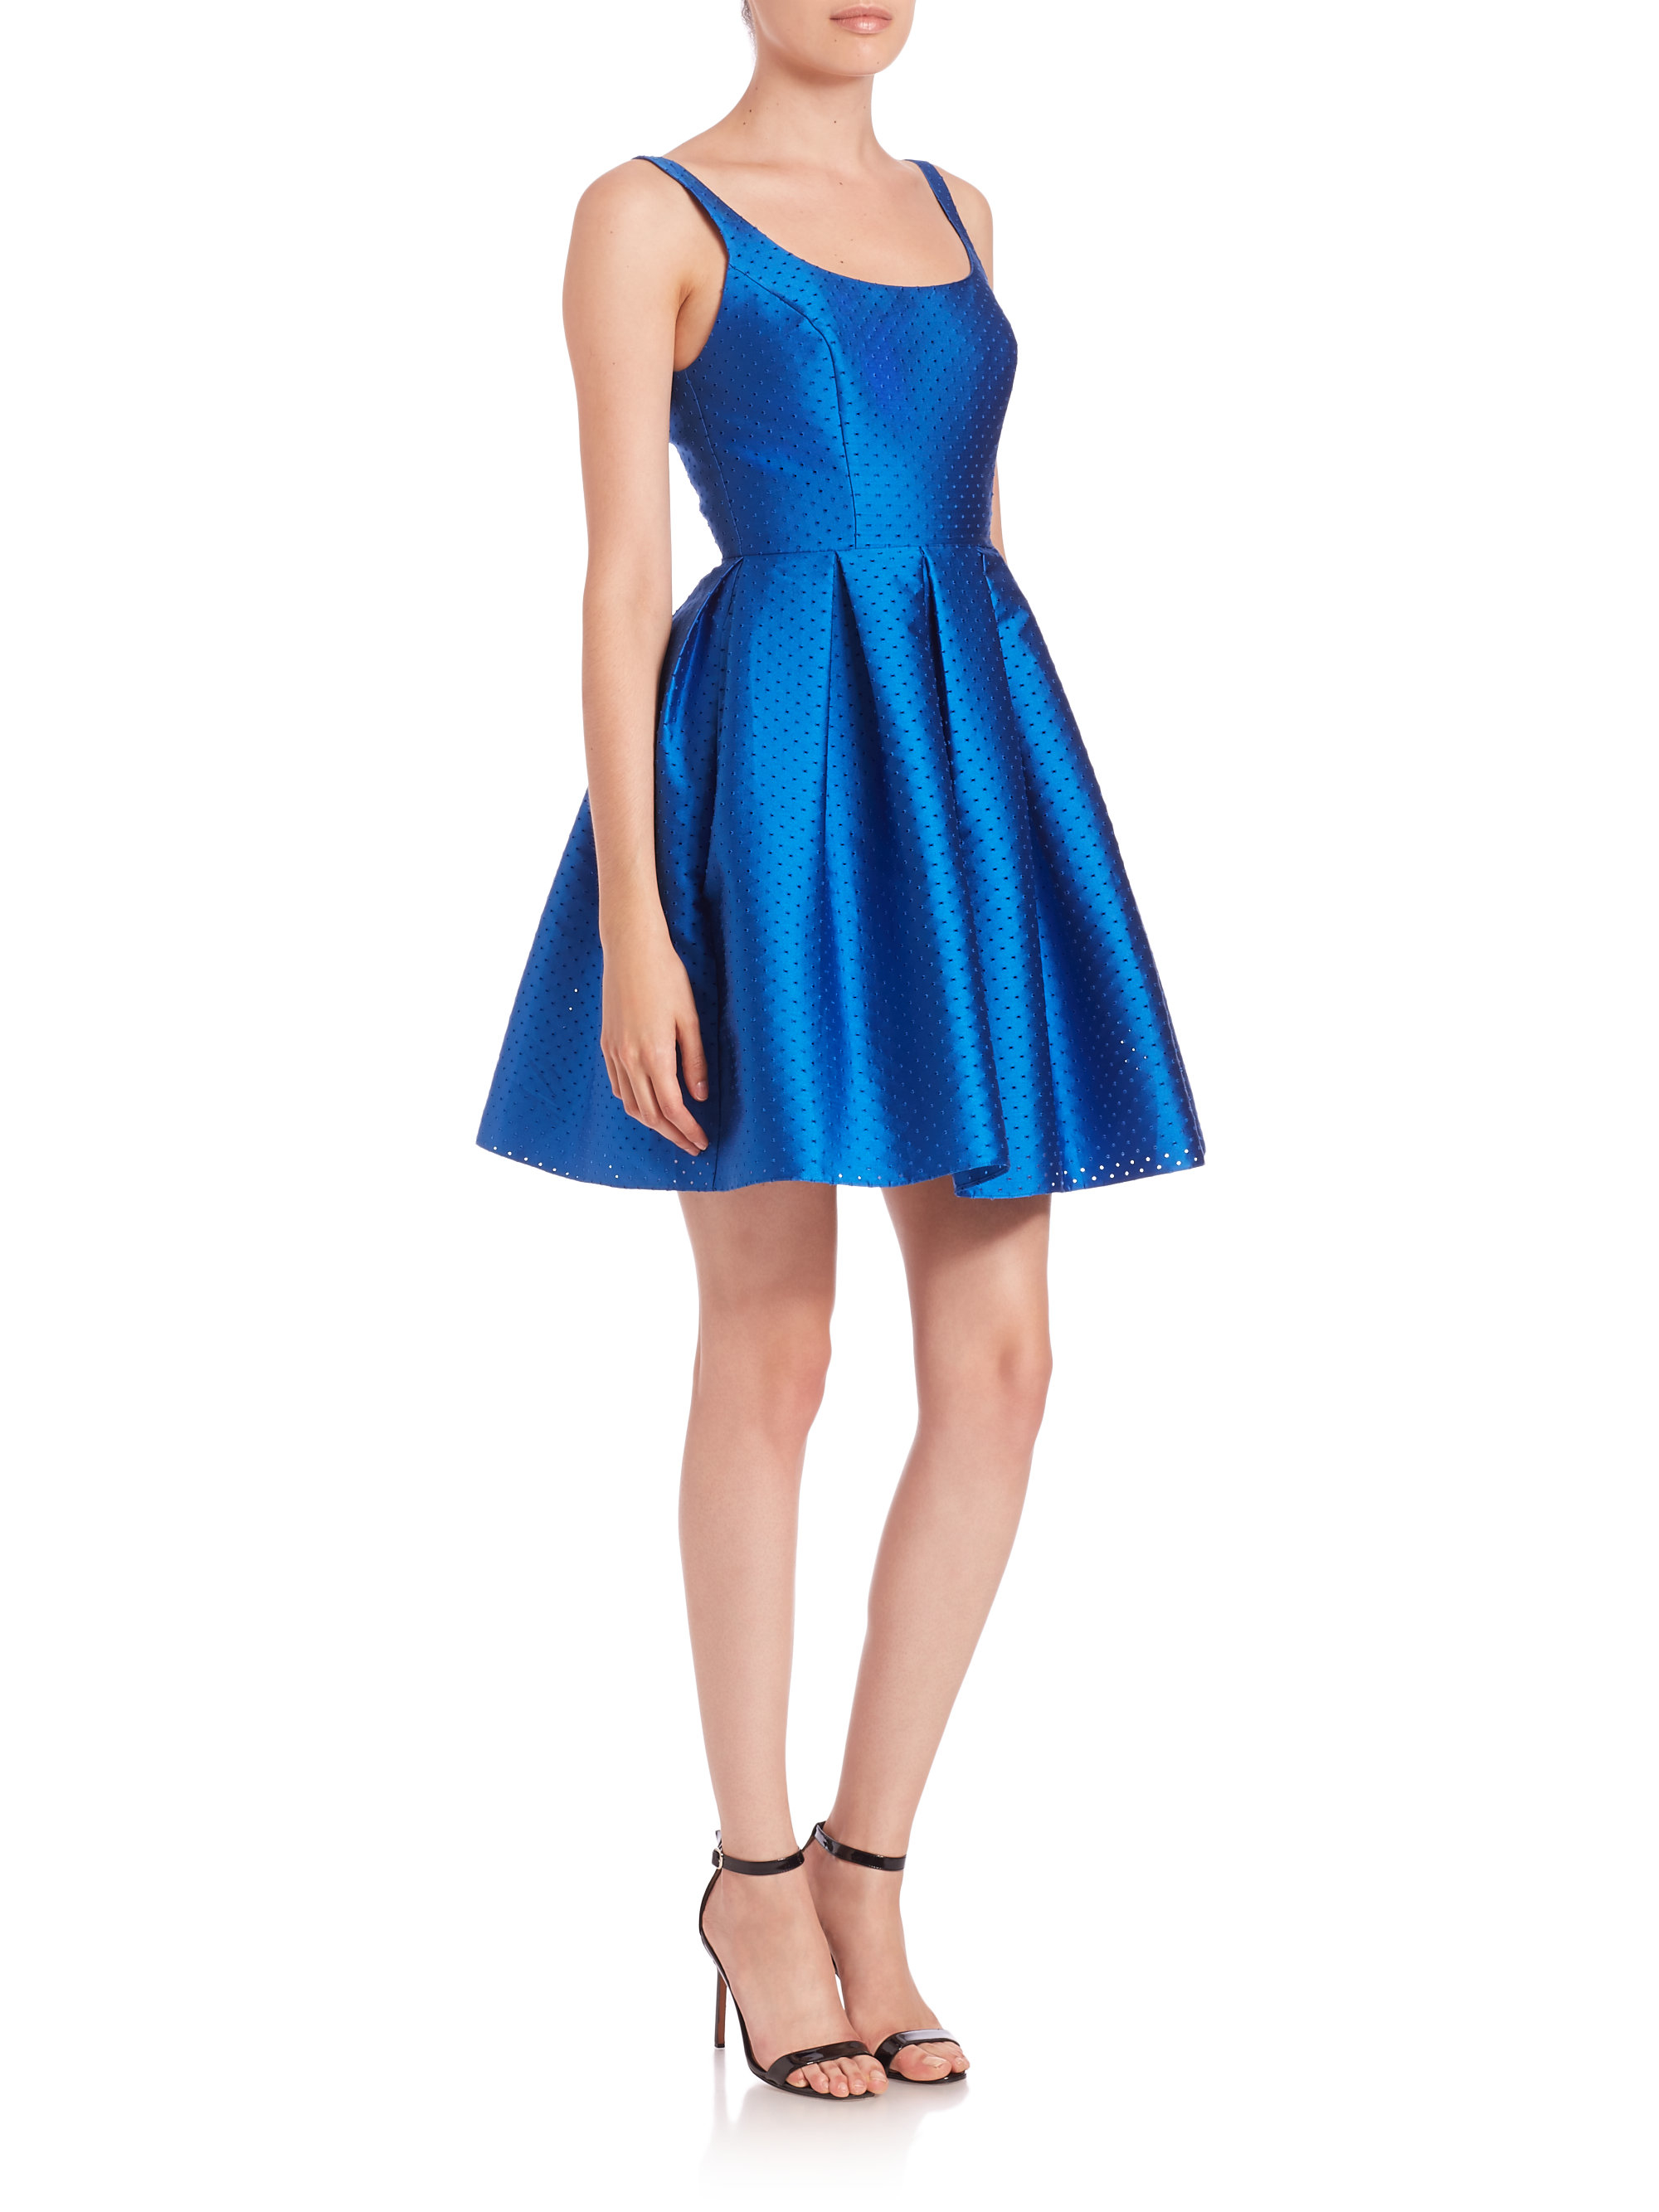 Lyst - Sachin & Babi Alma Perforated Party Dress in Blue